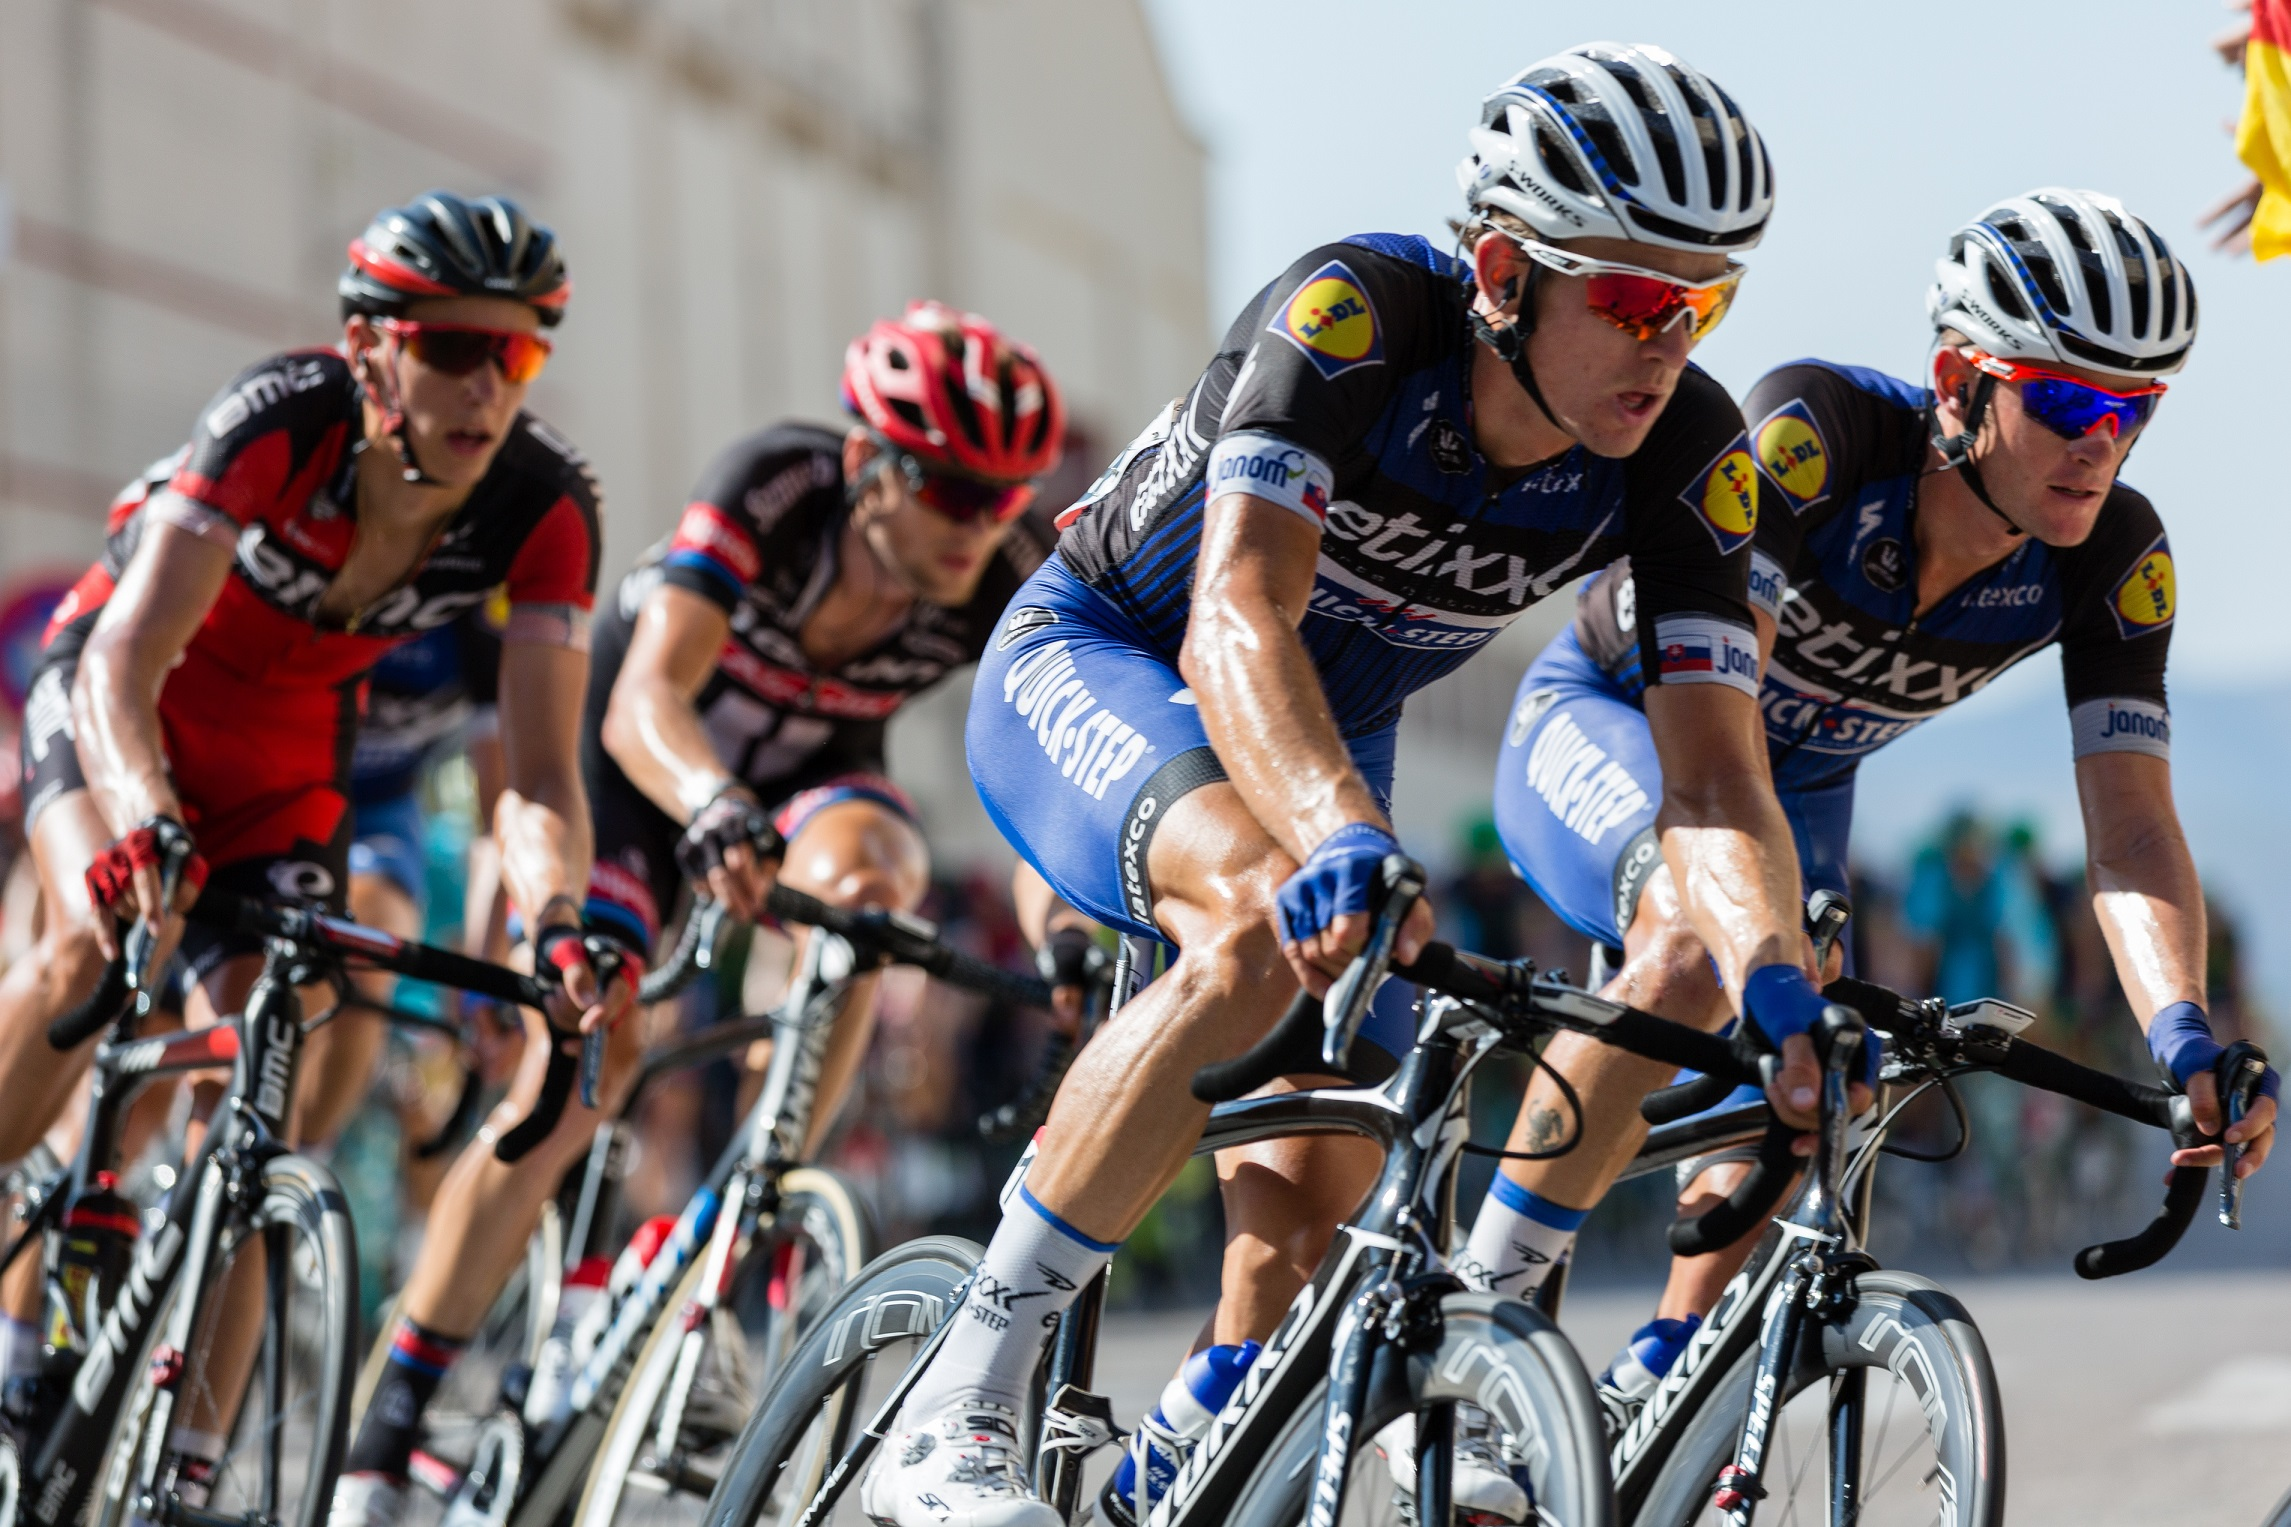 World Series Triathlon - Cyclists